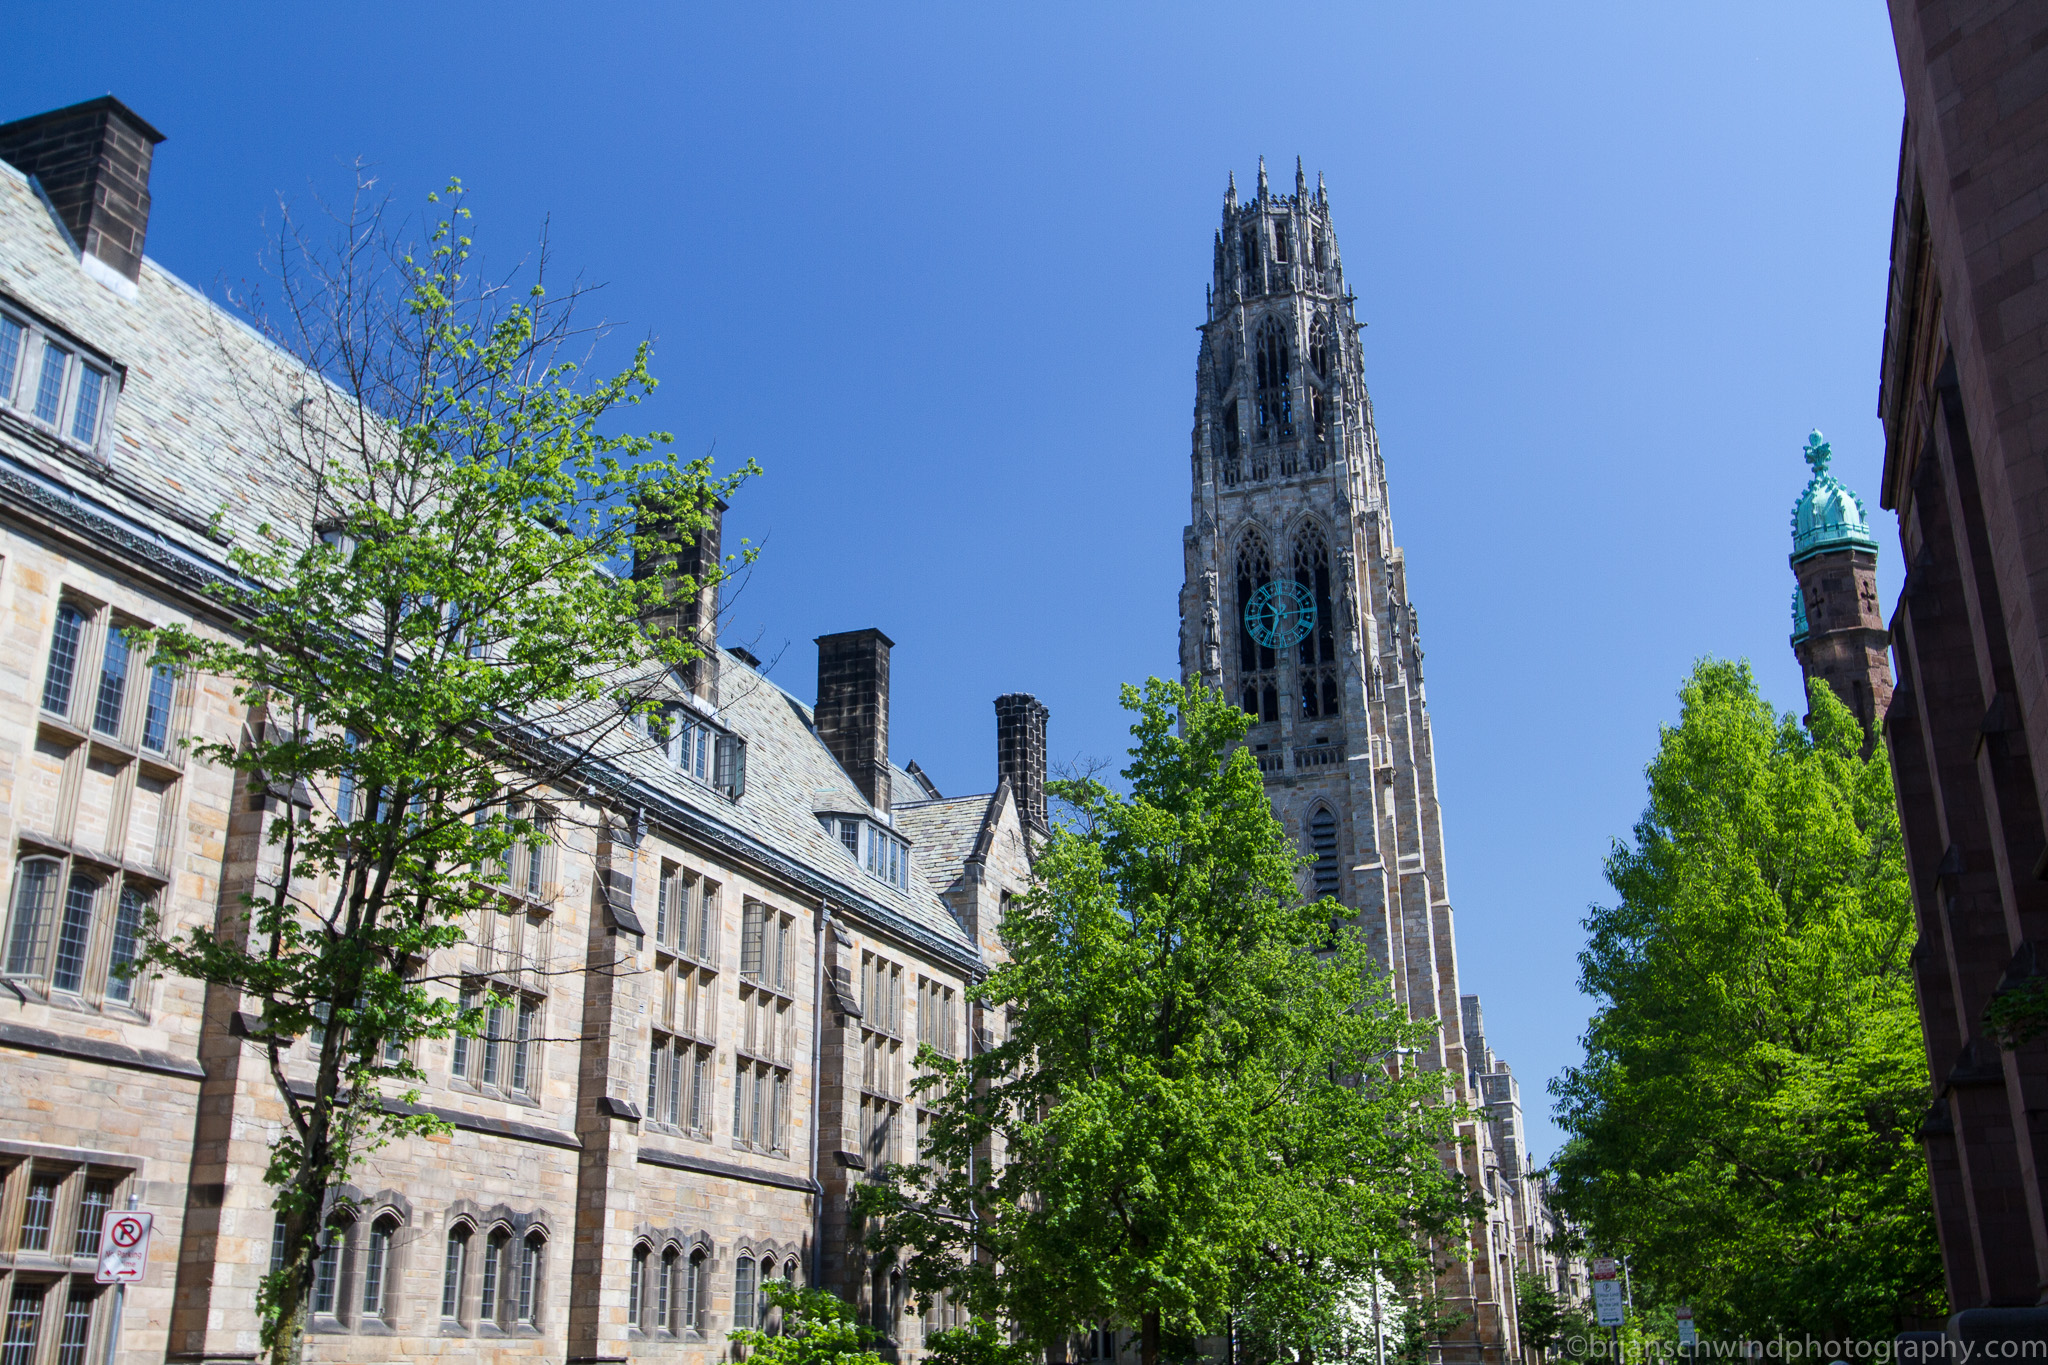 yale university View videos posted by yale university, one of the world's leading centers of learning and research established in 1701, yale is located in new haven, connec.